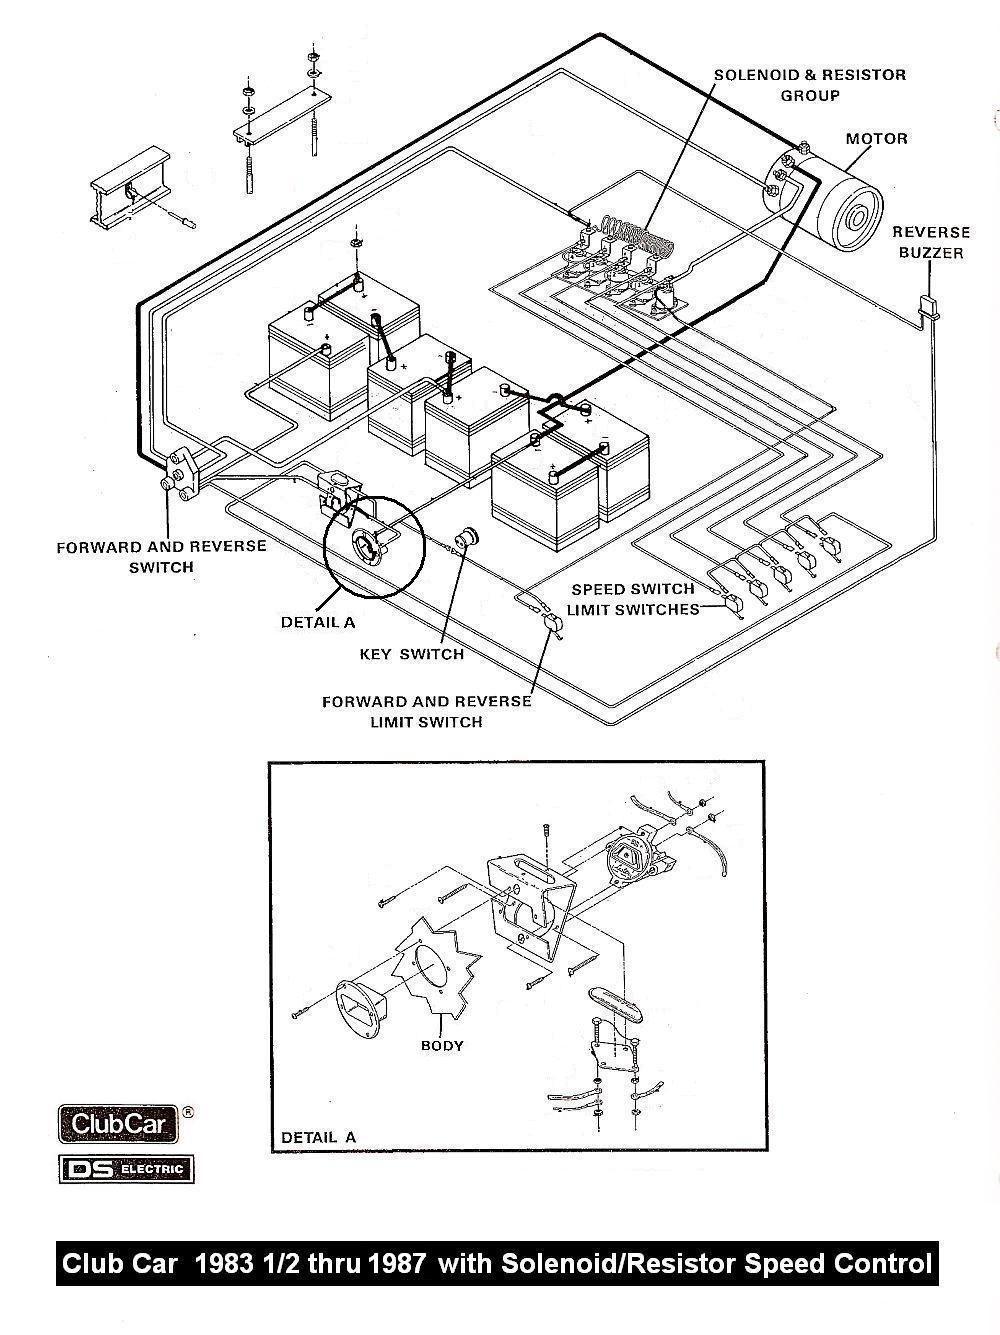 0e8d045370be7682b159825224221faa vintagegolfcartparts com *freezer & crock pot* pinterest wiring diagram for gas club car golf cart at bakdesigns.co